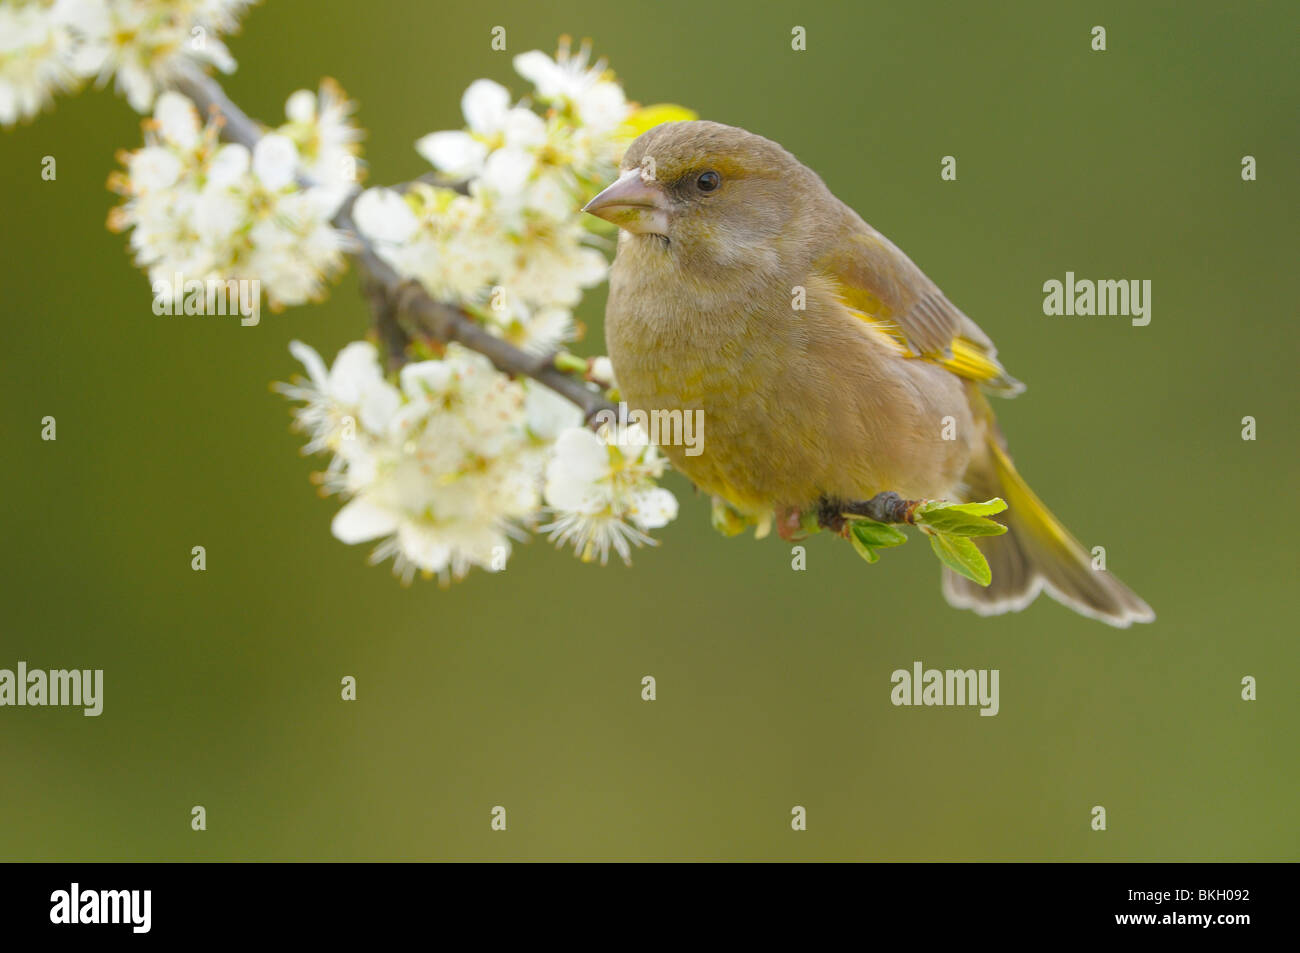 Female Greenfinch perched on end of a blooming branch. Vrouw Groenling zittend op einde van een bloeiende tak Stock Photo